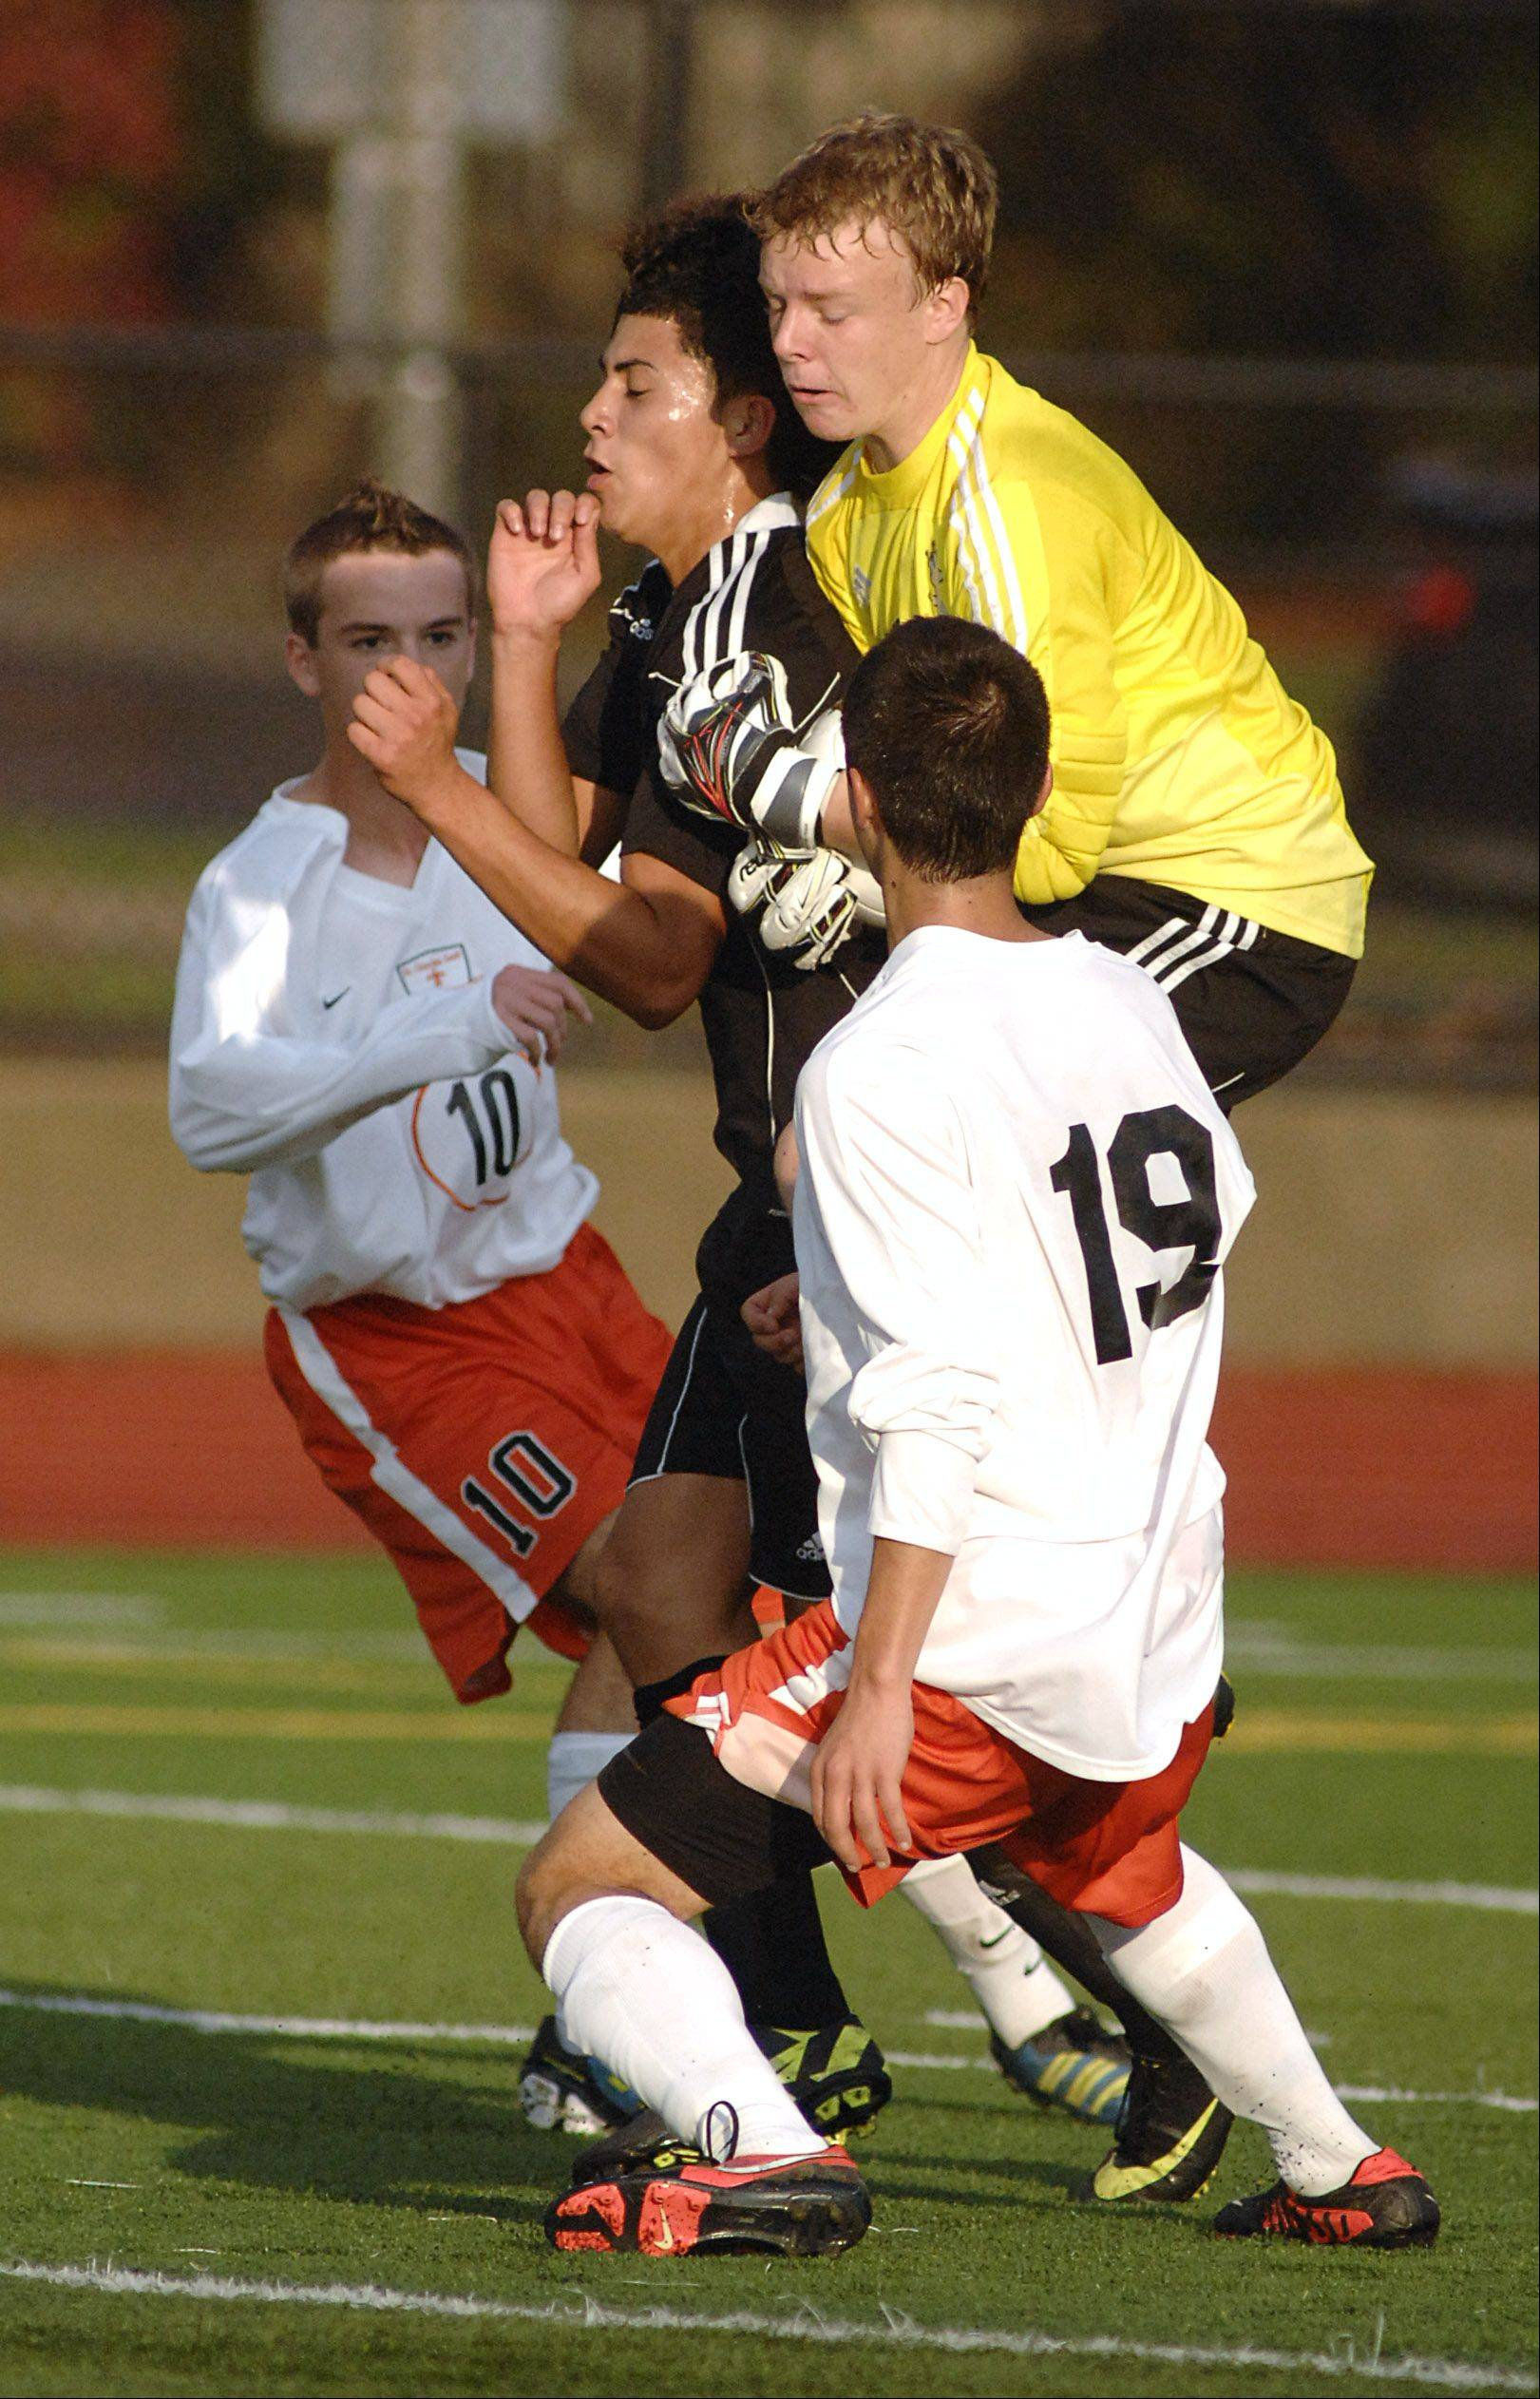 Streamwood goalkeeper Phil Lewy jumps in to save the ball from a goal in the first half on Tuesday, October 23.